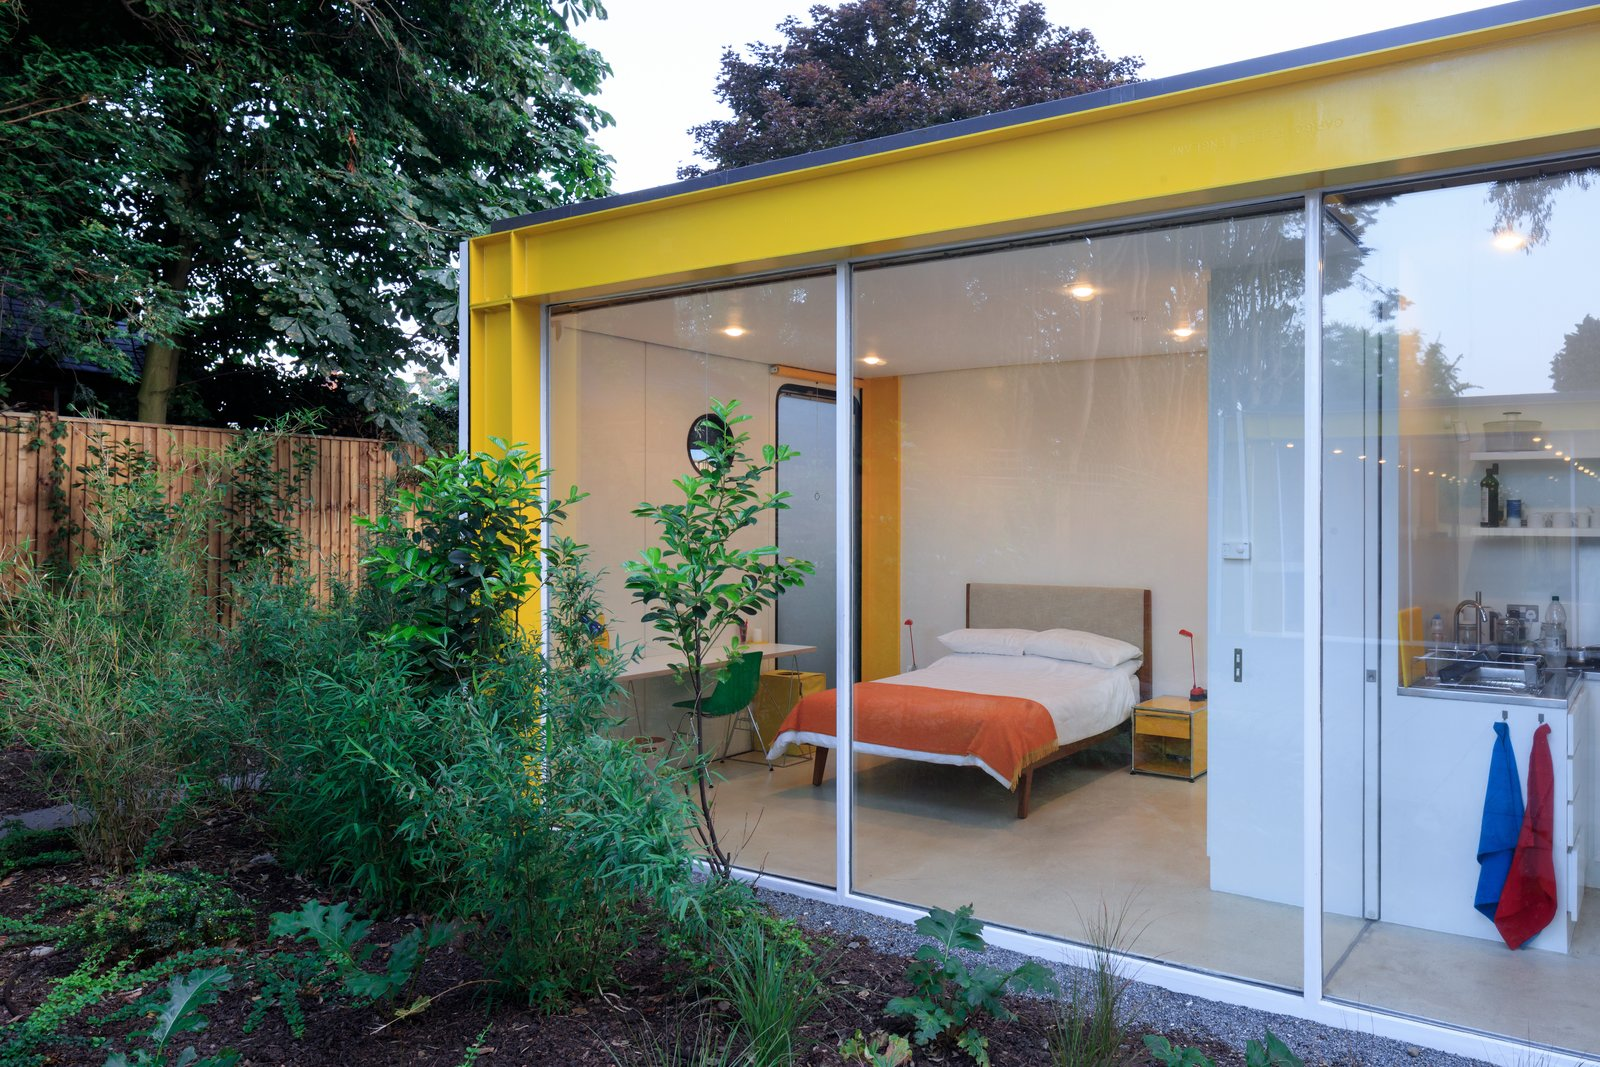 Tagged: Bedroom and Bed. Fully Renovated, Wimbledon House by Richard Rogers Hosts New Architecture Fellows in London - Photo 10 of 14